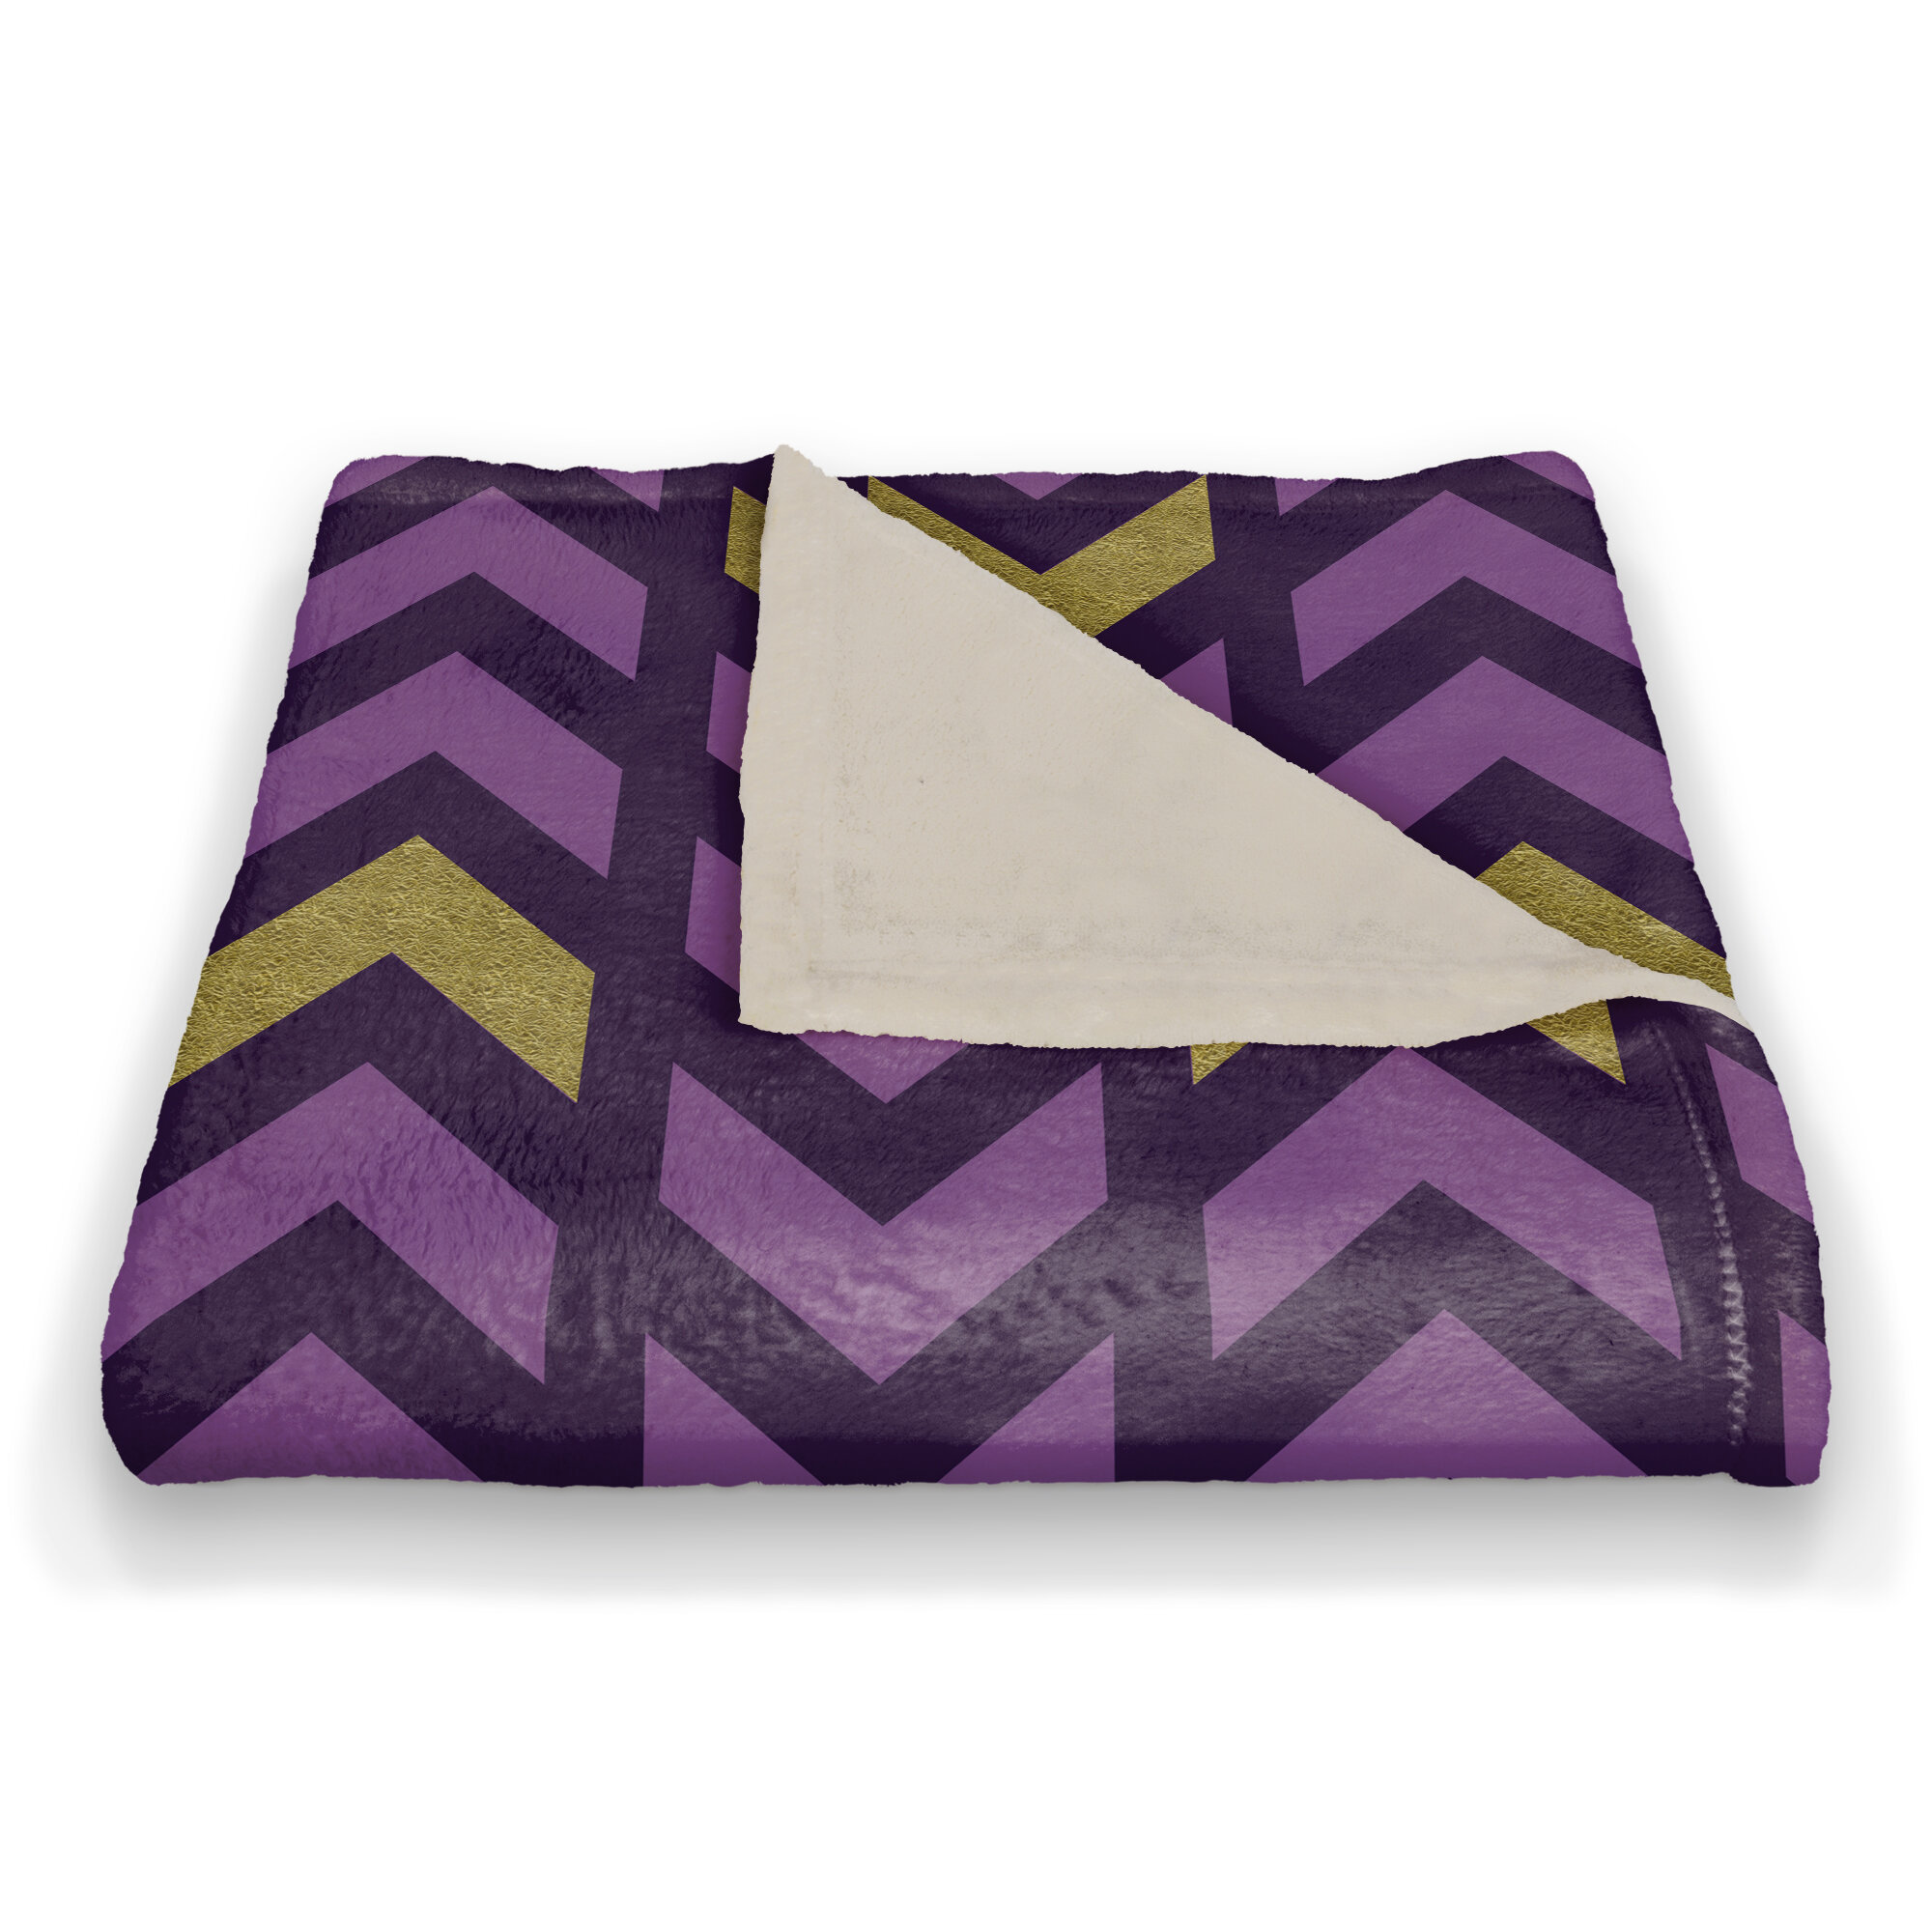 Posh Luxe Purple Blankets Throws You Ll Love In 2021 Wayfair